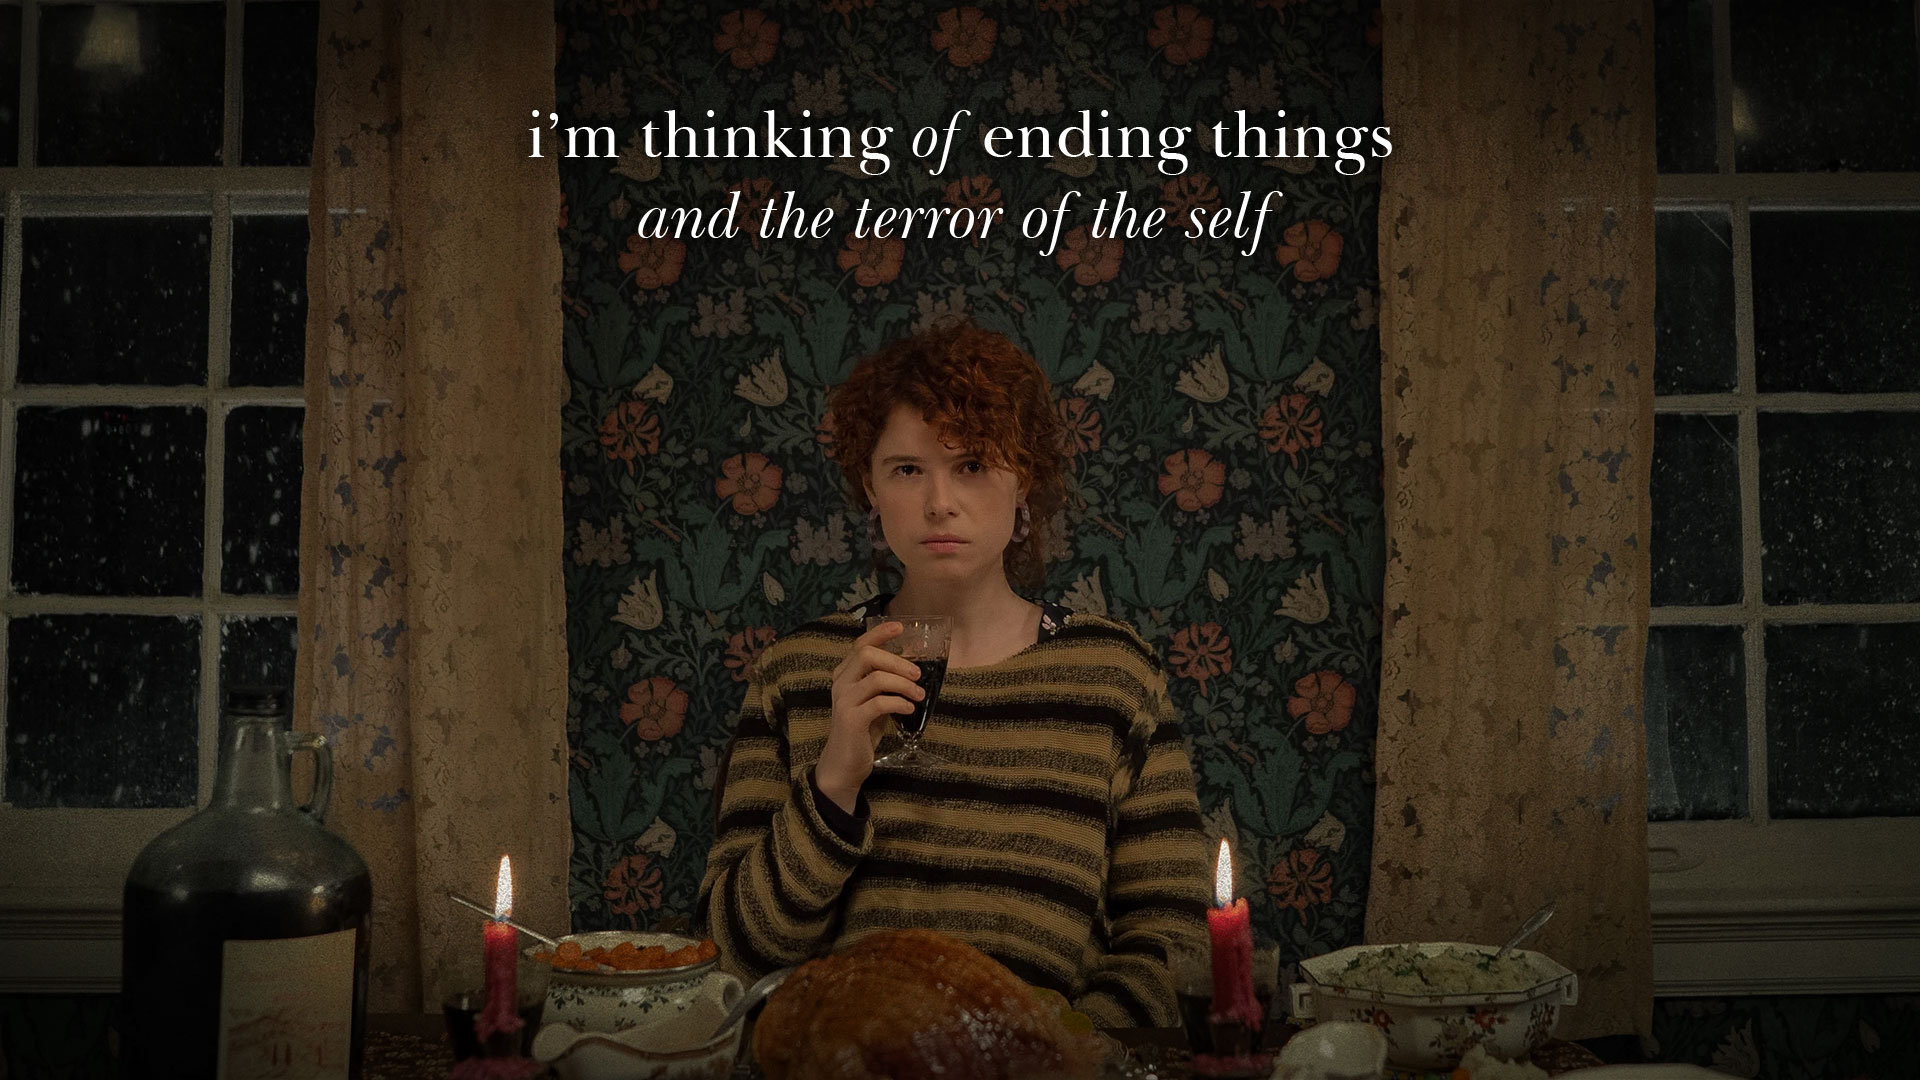 'I'm Thinking of Ending Things' and the Terror of the Self